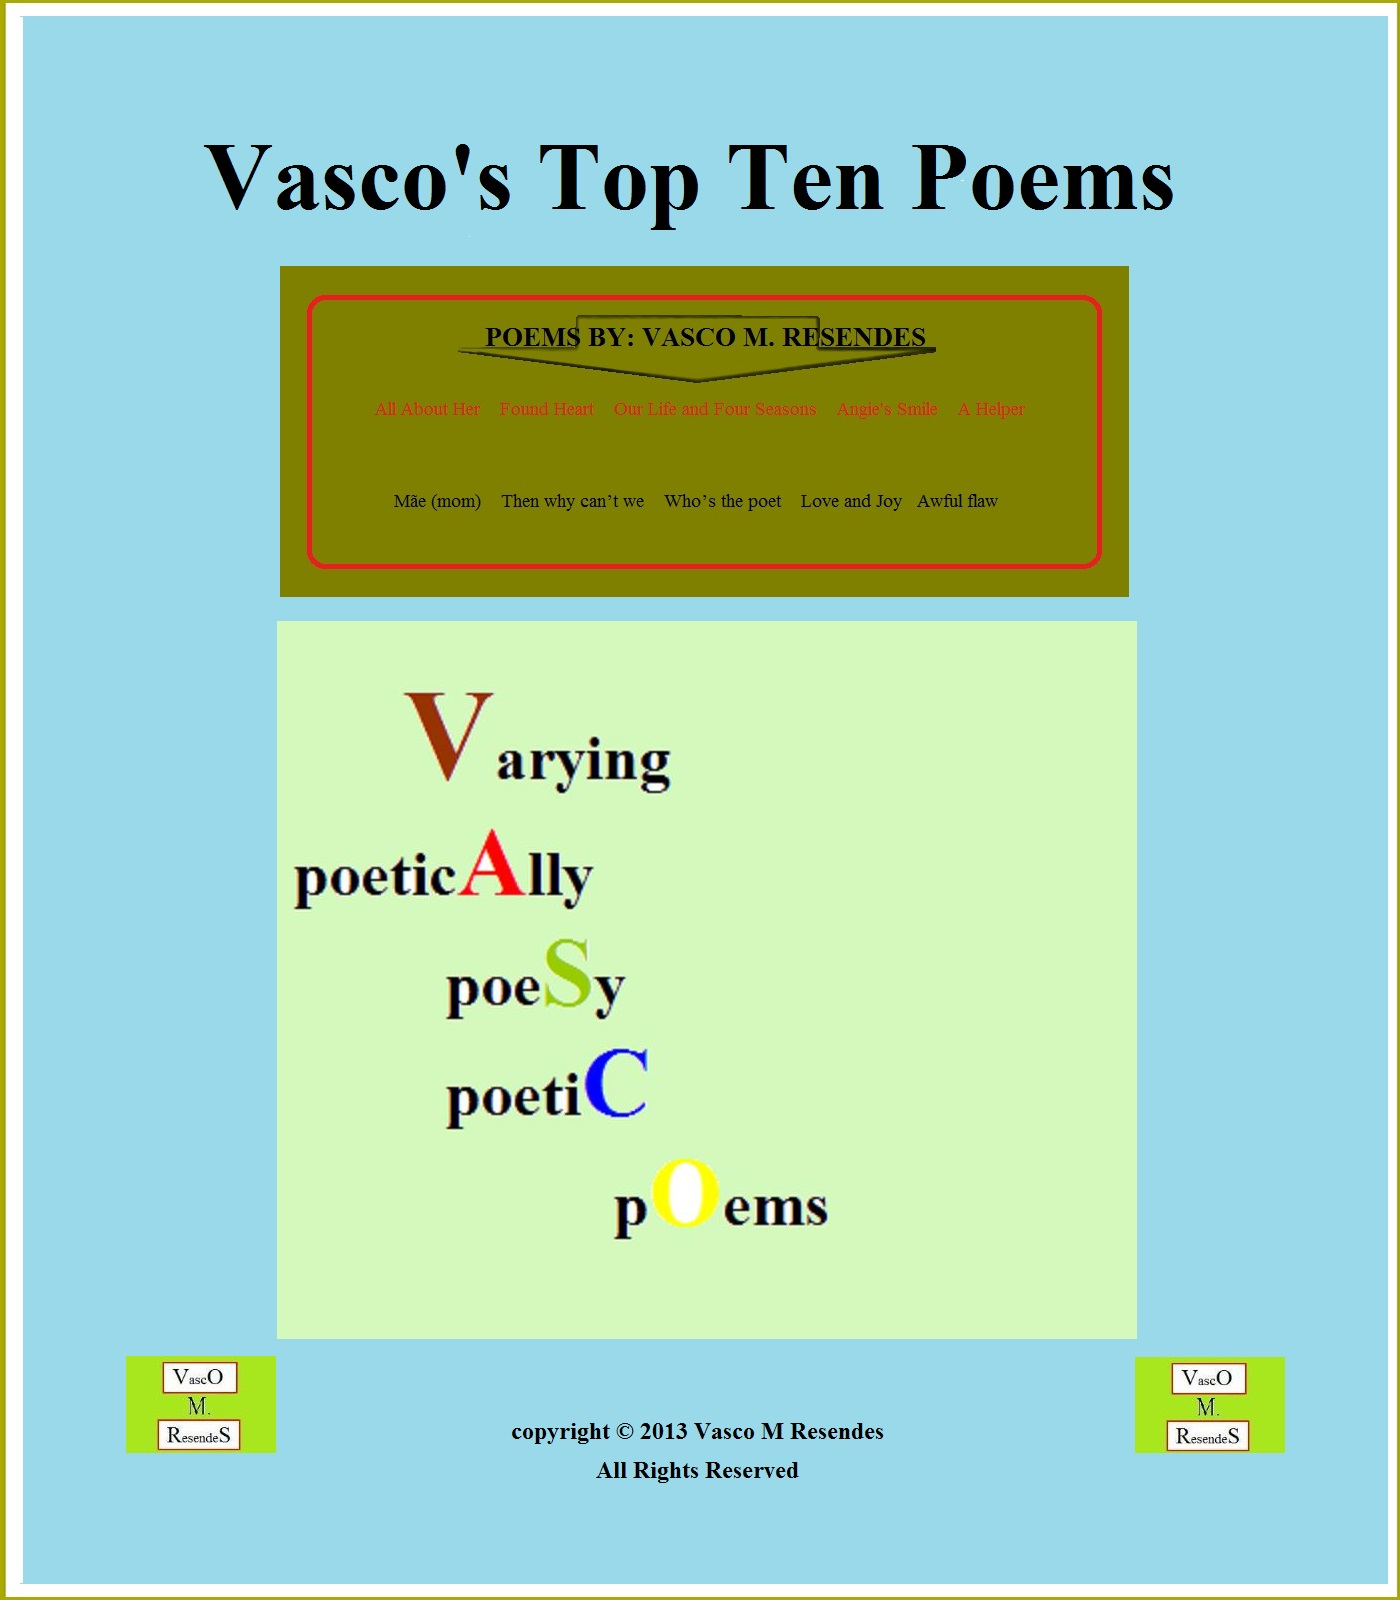 About poems life ten top 13 Of